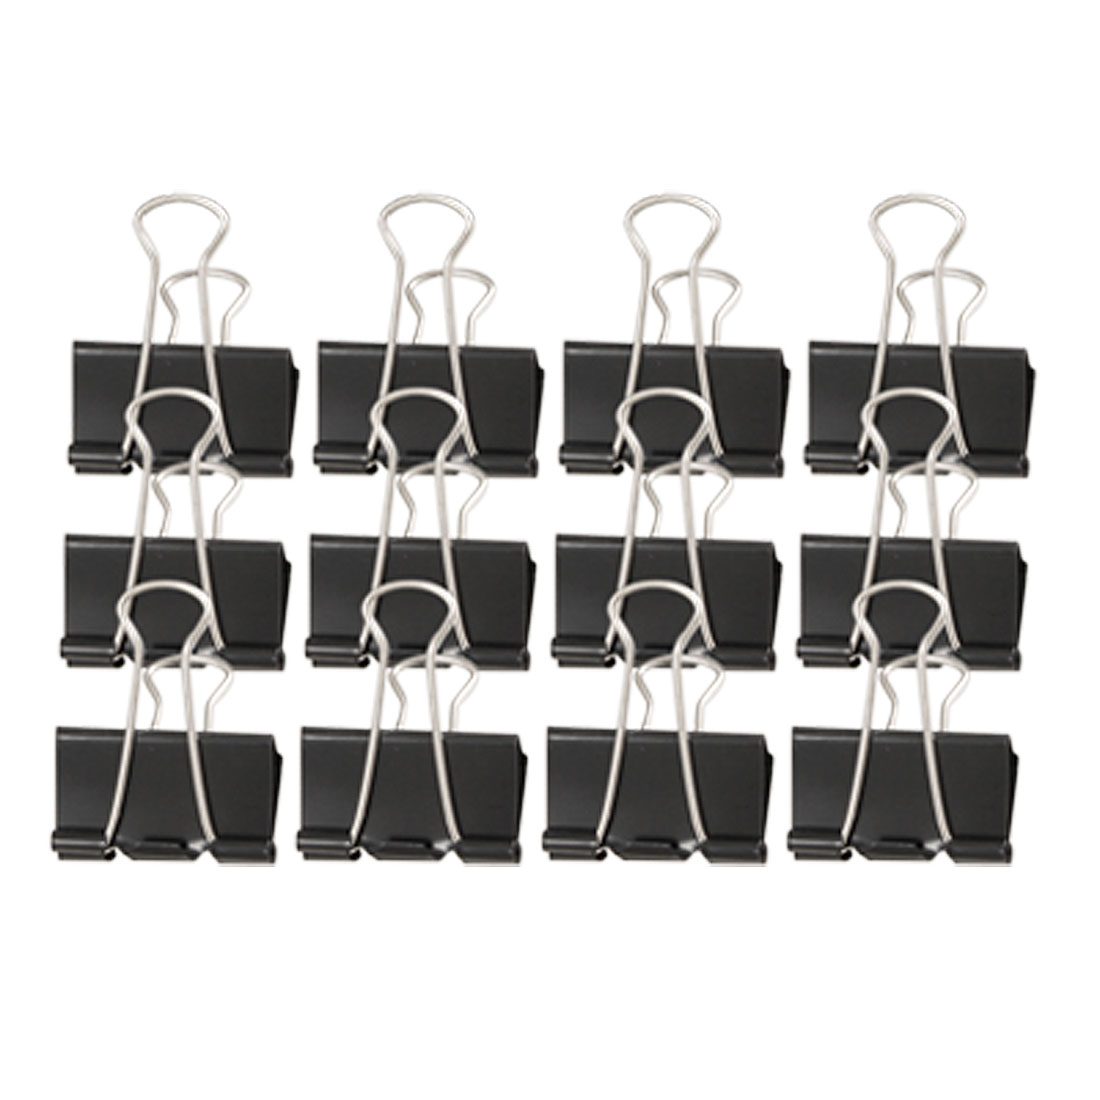 "12 Pcs 1 5/8"" Width Black Silver Tone Metal Binder Clip for Office School"